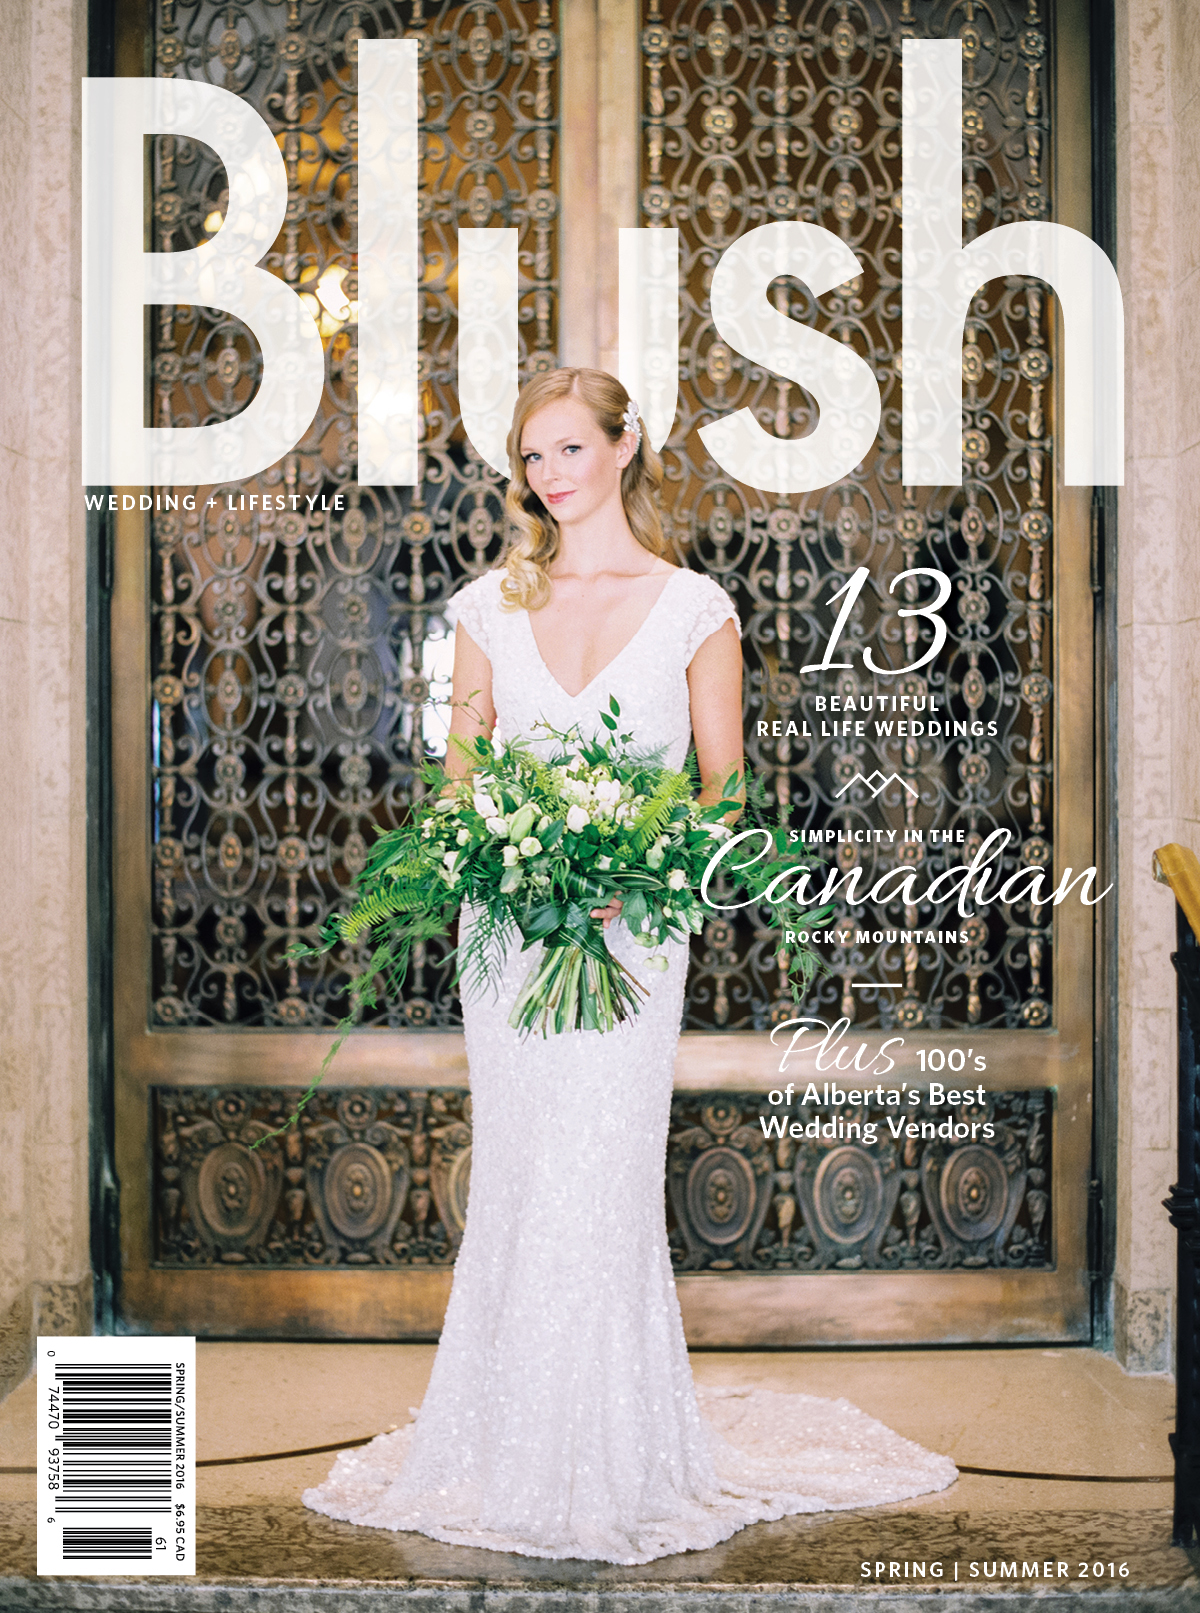 Blush :: Spring 2016 Cover Feature